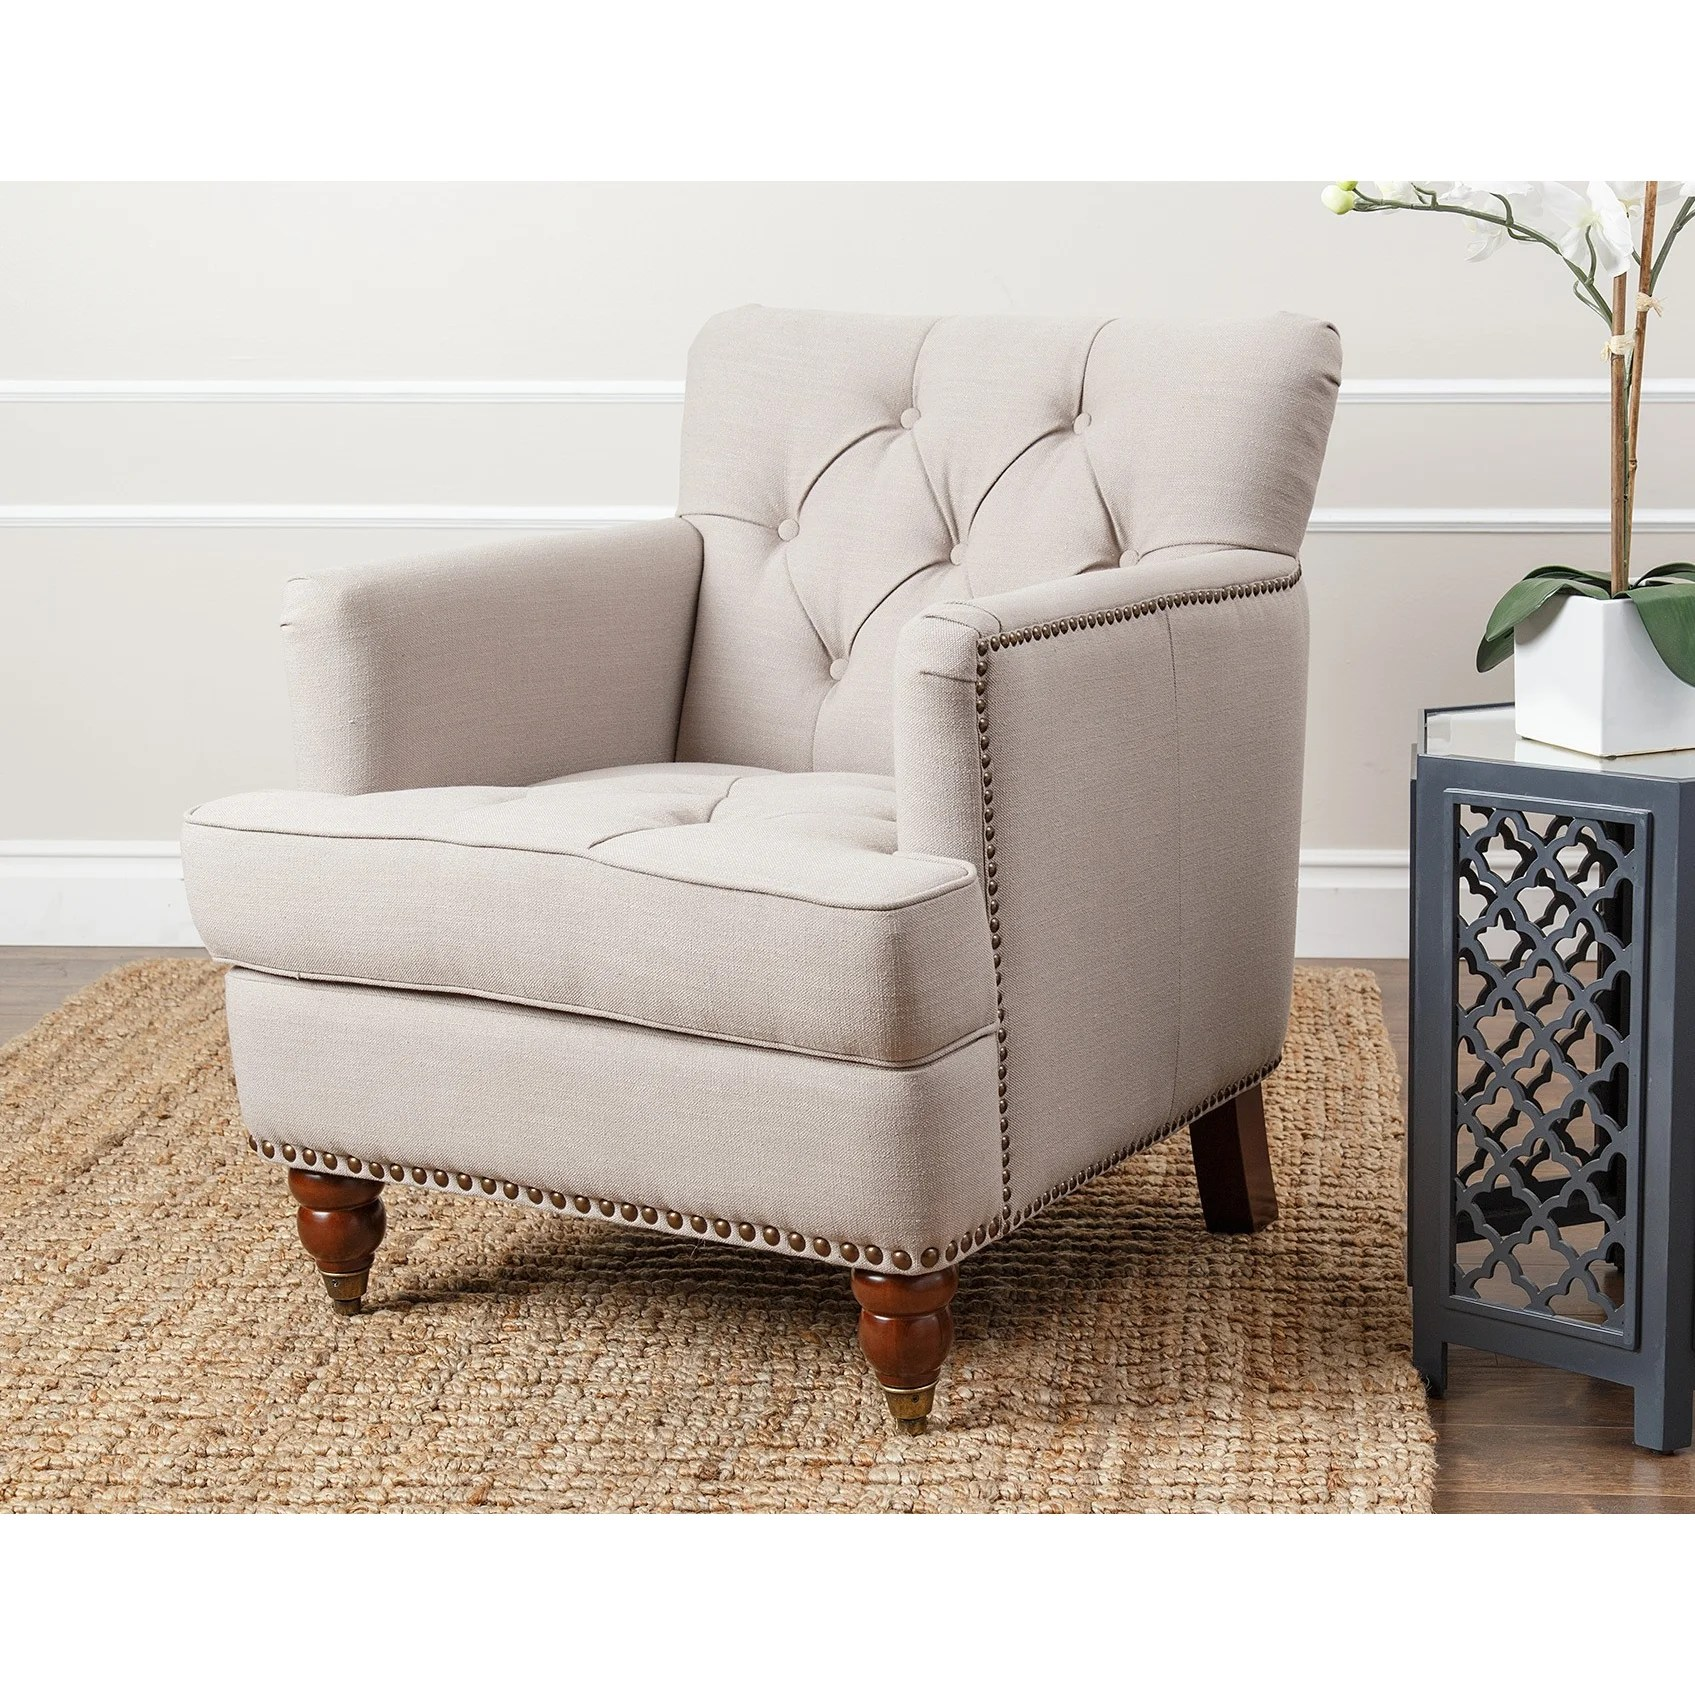 abbyson living thatcher fabric rocking chair in beige wheelchair bathroom darby home co newland arm and reviews wayfair